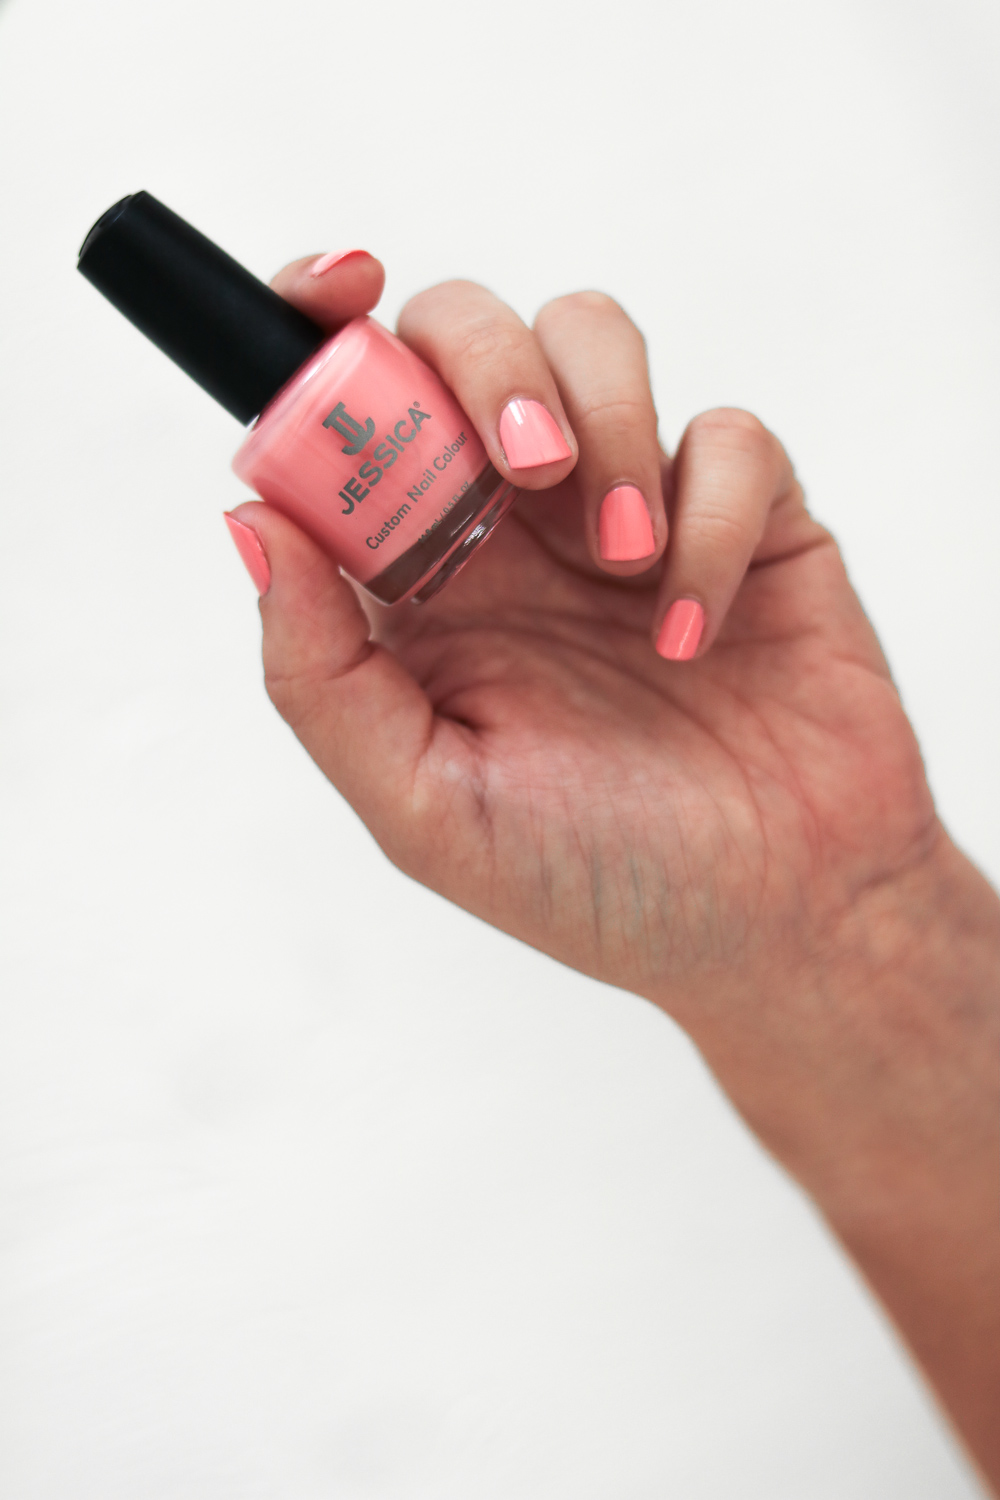 Jessica Custom Nail Colour in Peony | 9Lives